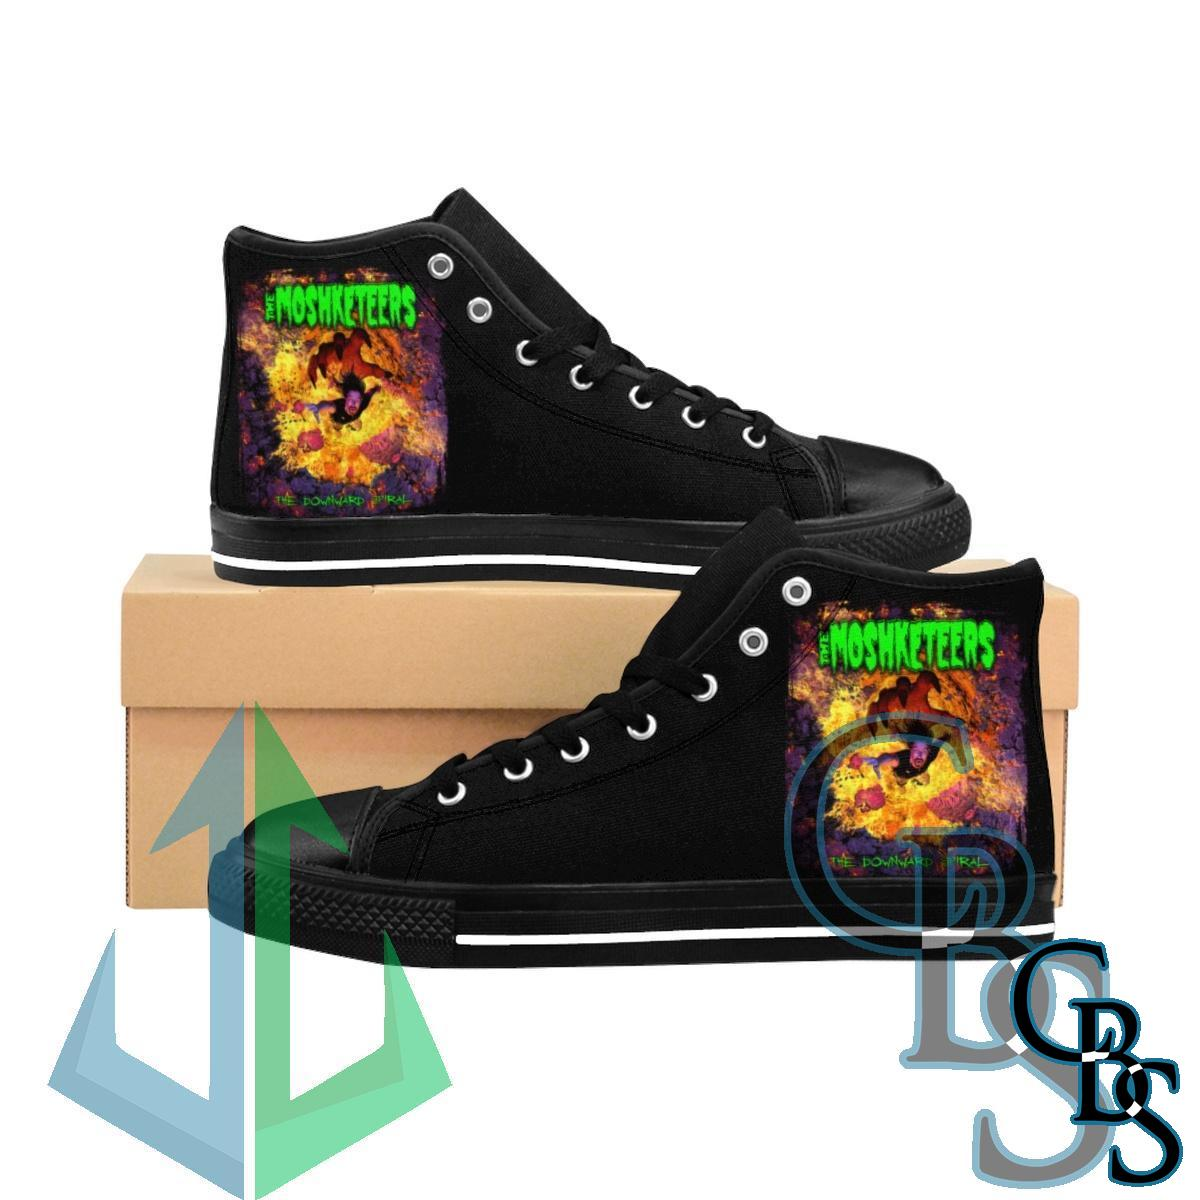 The Mosketeers – The Downward Spiral Men's High-top Sneakers